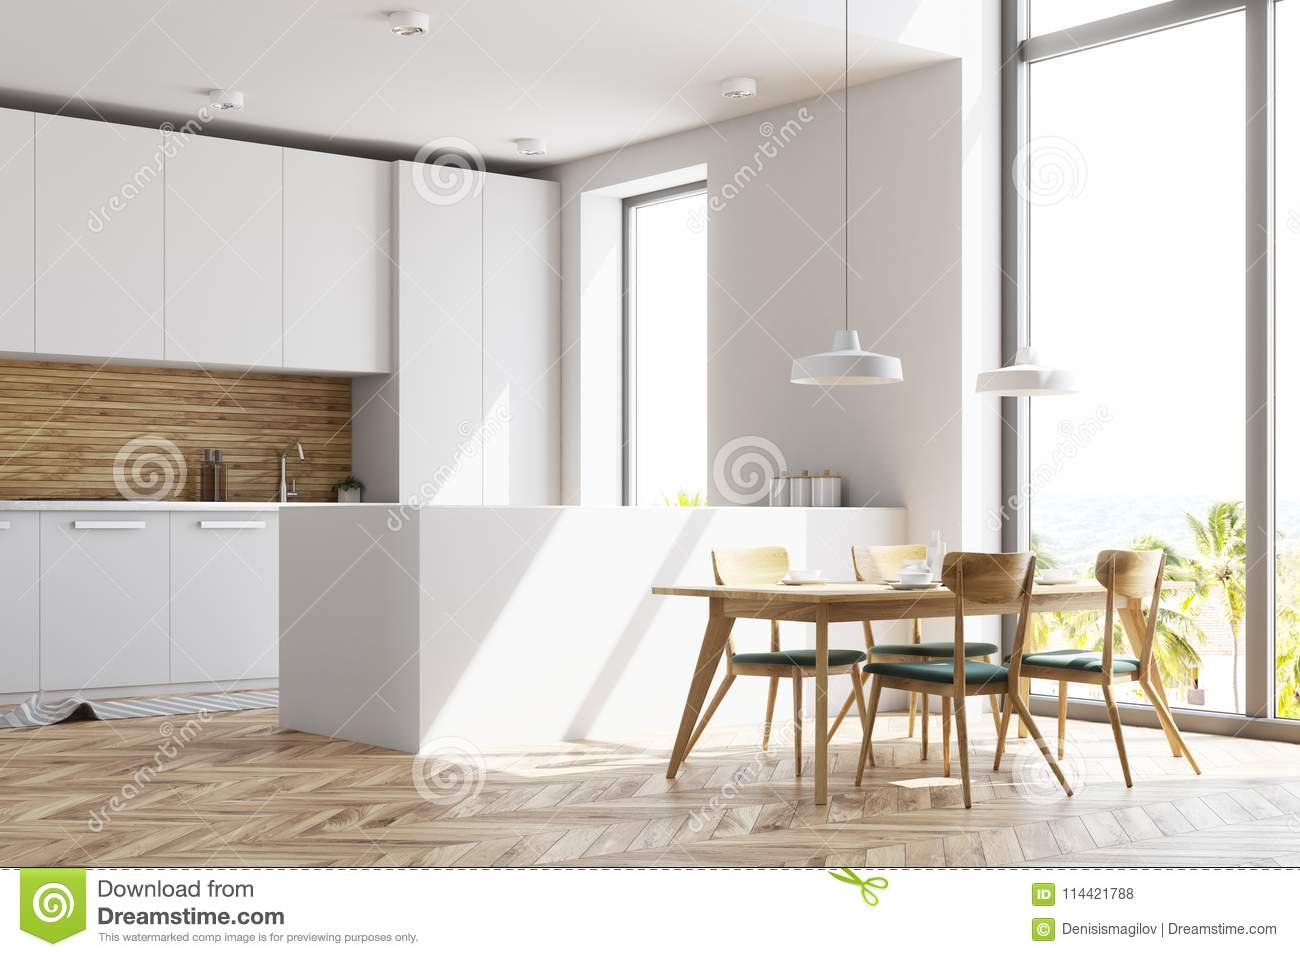 Incredible White And Wooden Kitchen With A Table Side View Stock Pabps2019 Chair Design Images Pabps2019Com